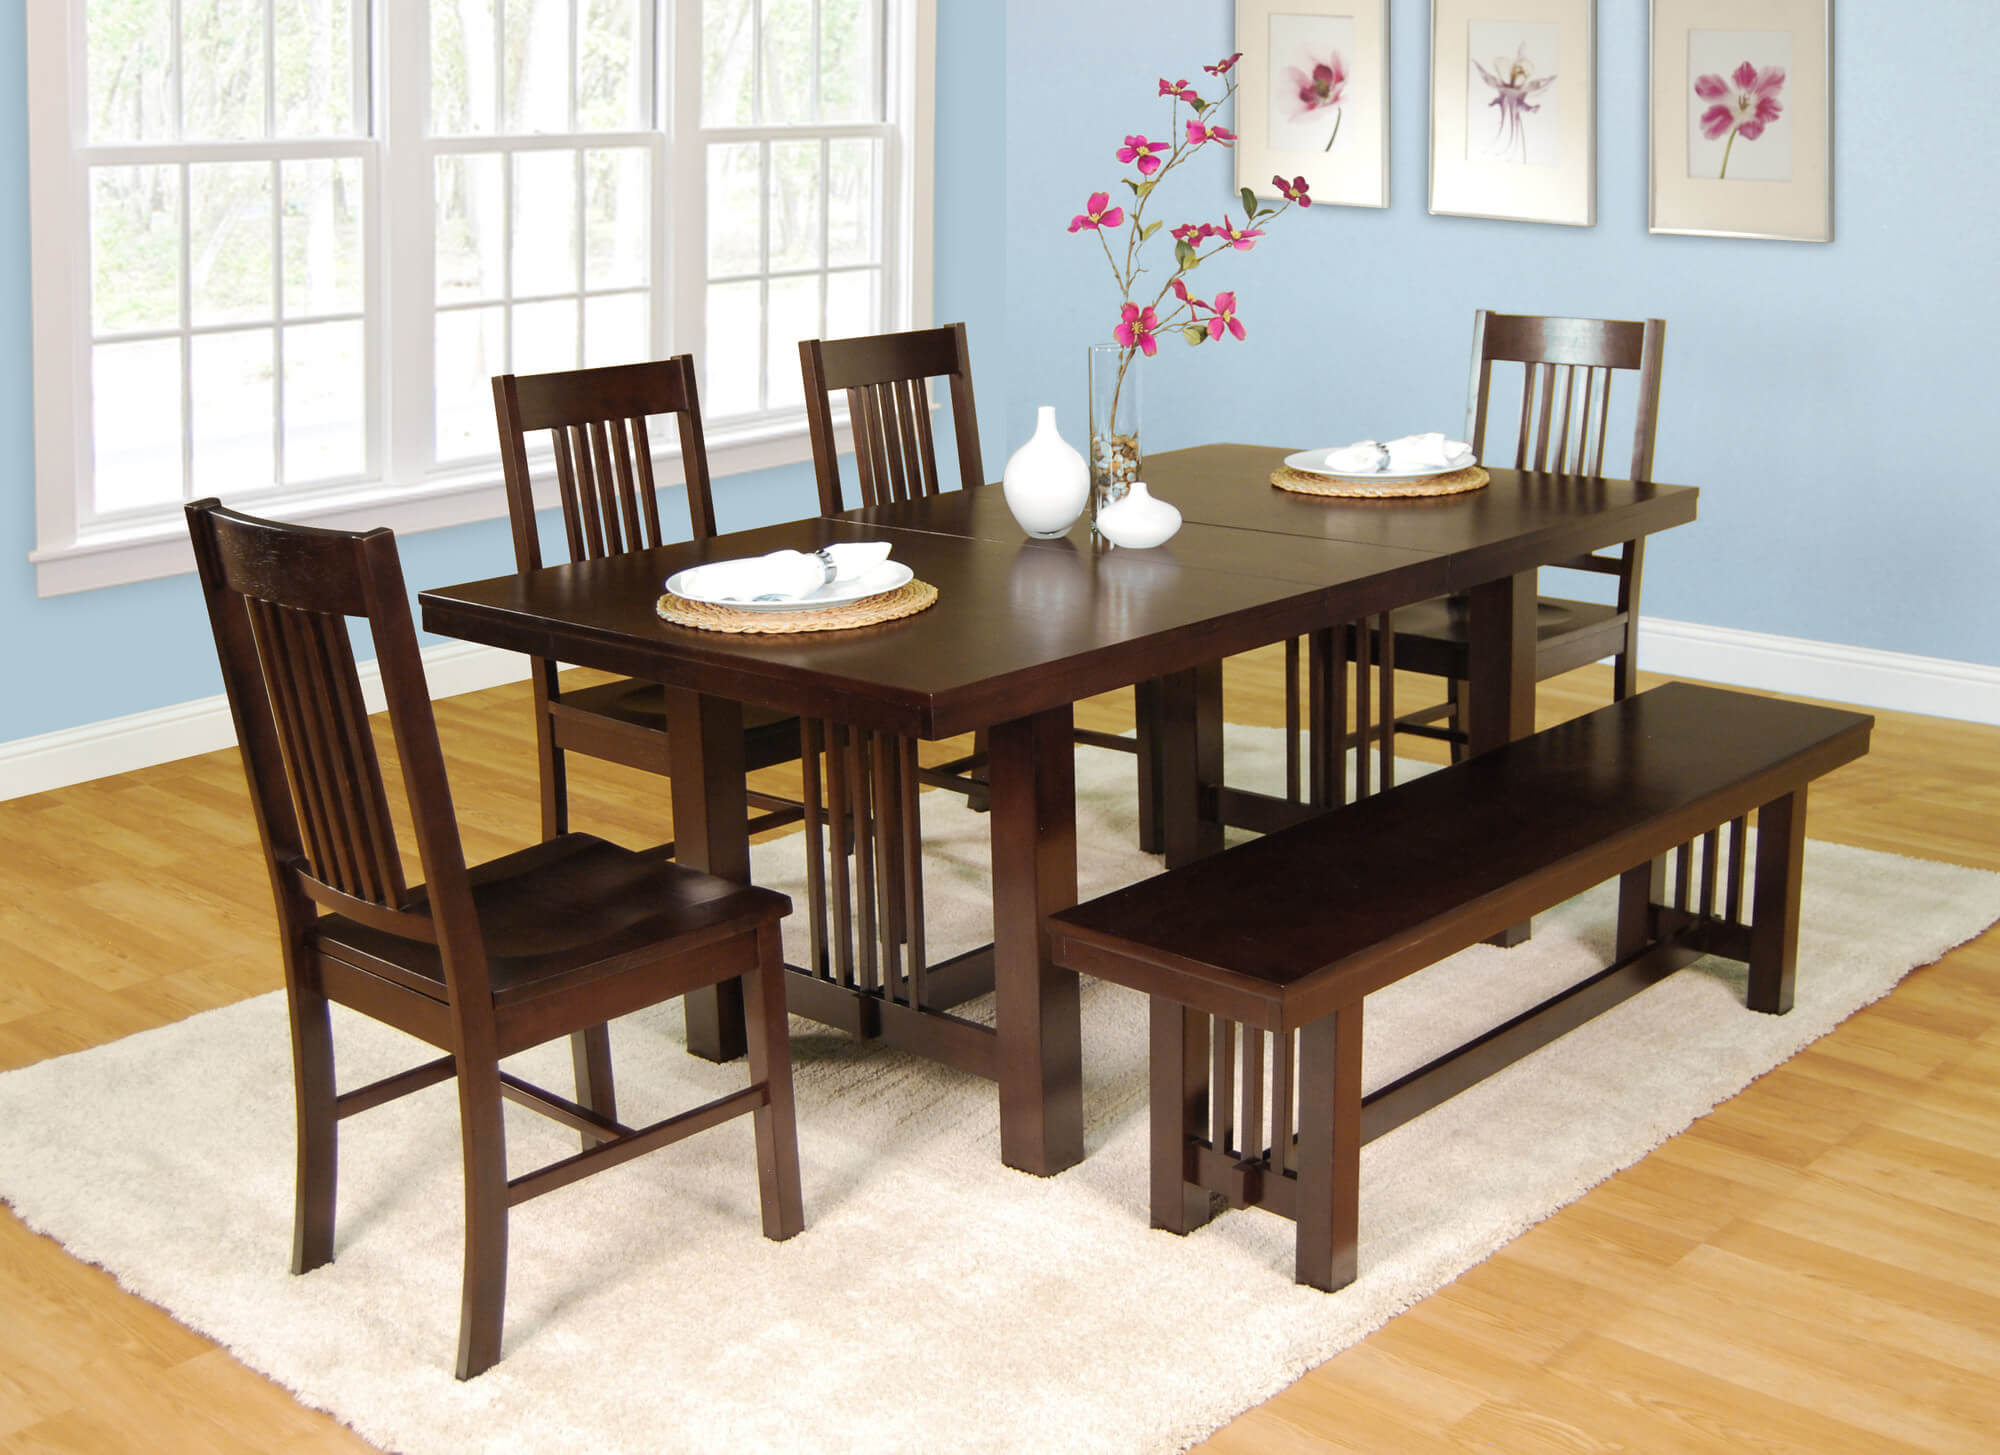 solid wood dining room sets. Here s a very solid dining set with bench  Table can be extended center 26 Dining Room Sets Big and Small Bench Seating 2018